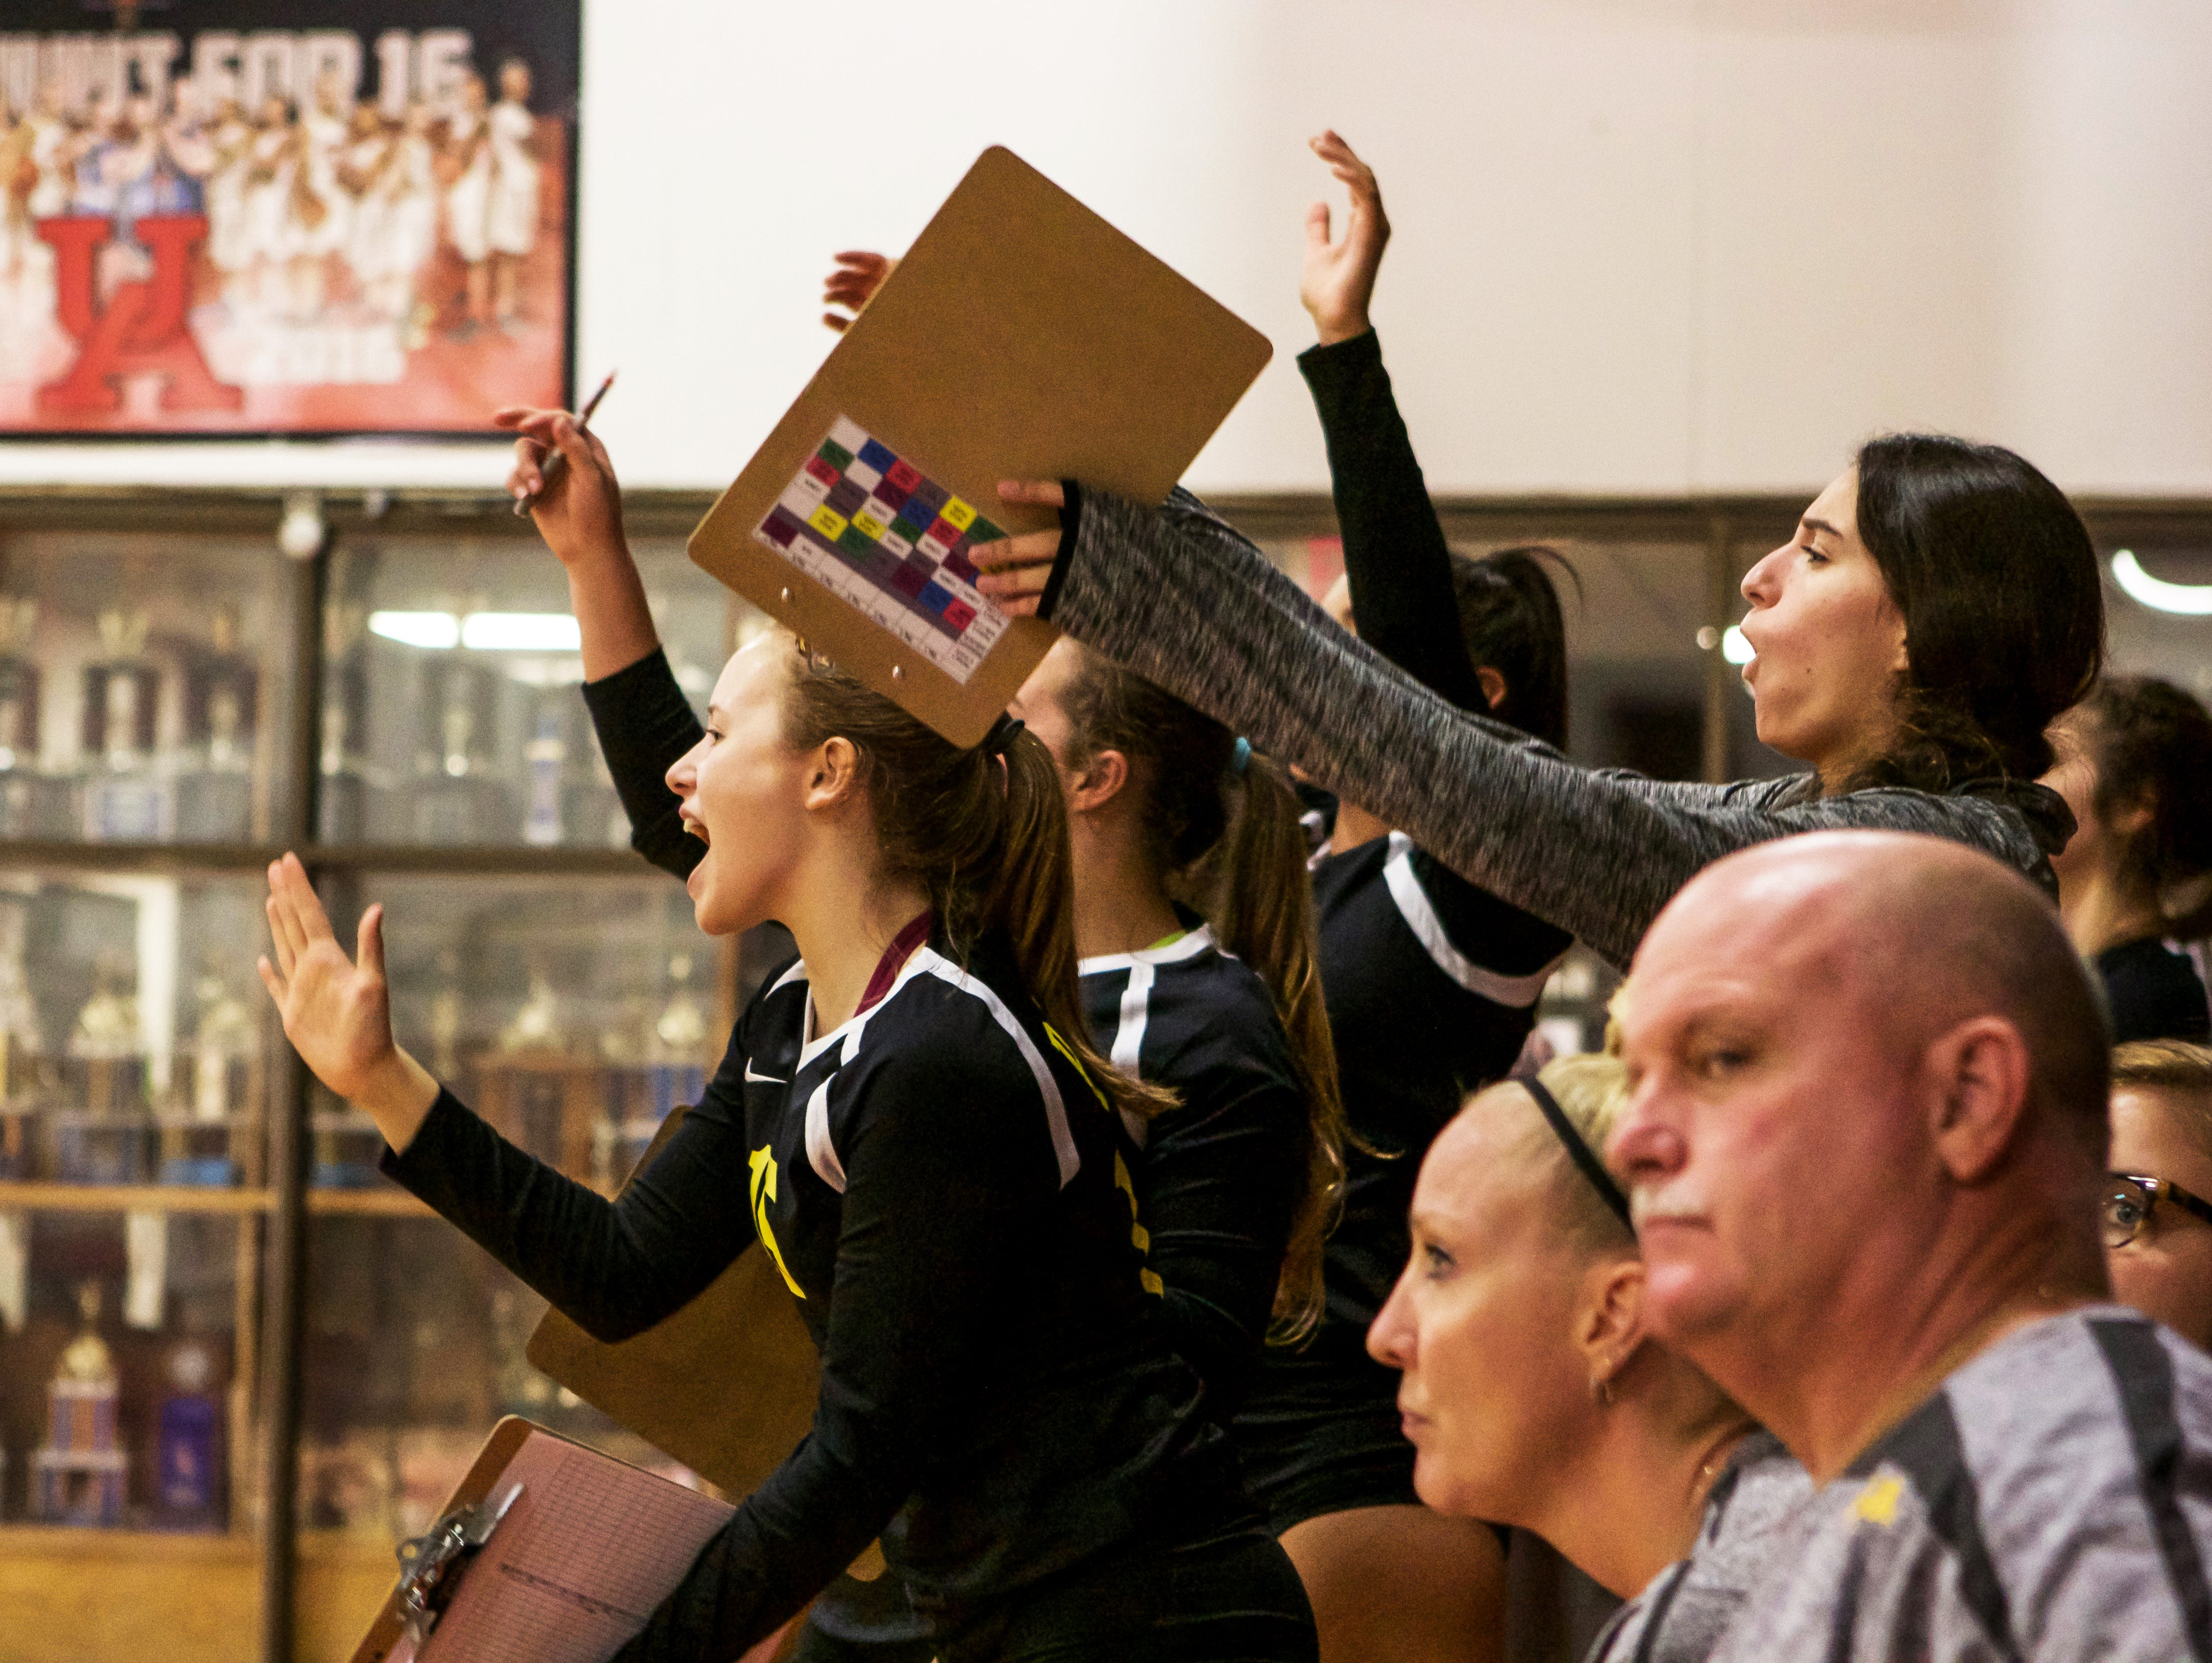 On the sideline, Padua players cheer on their teammates.